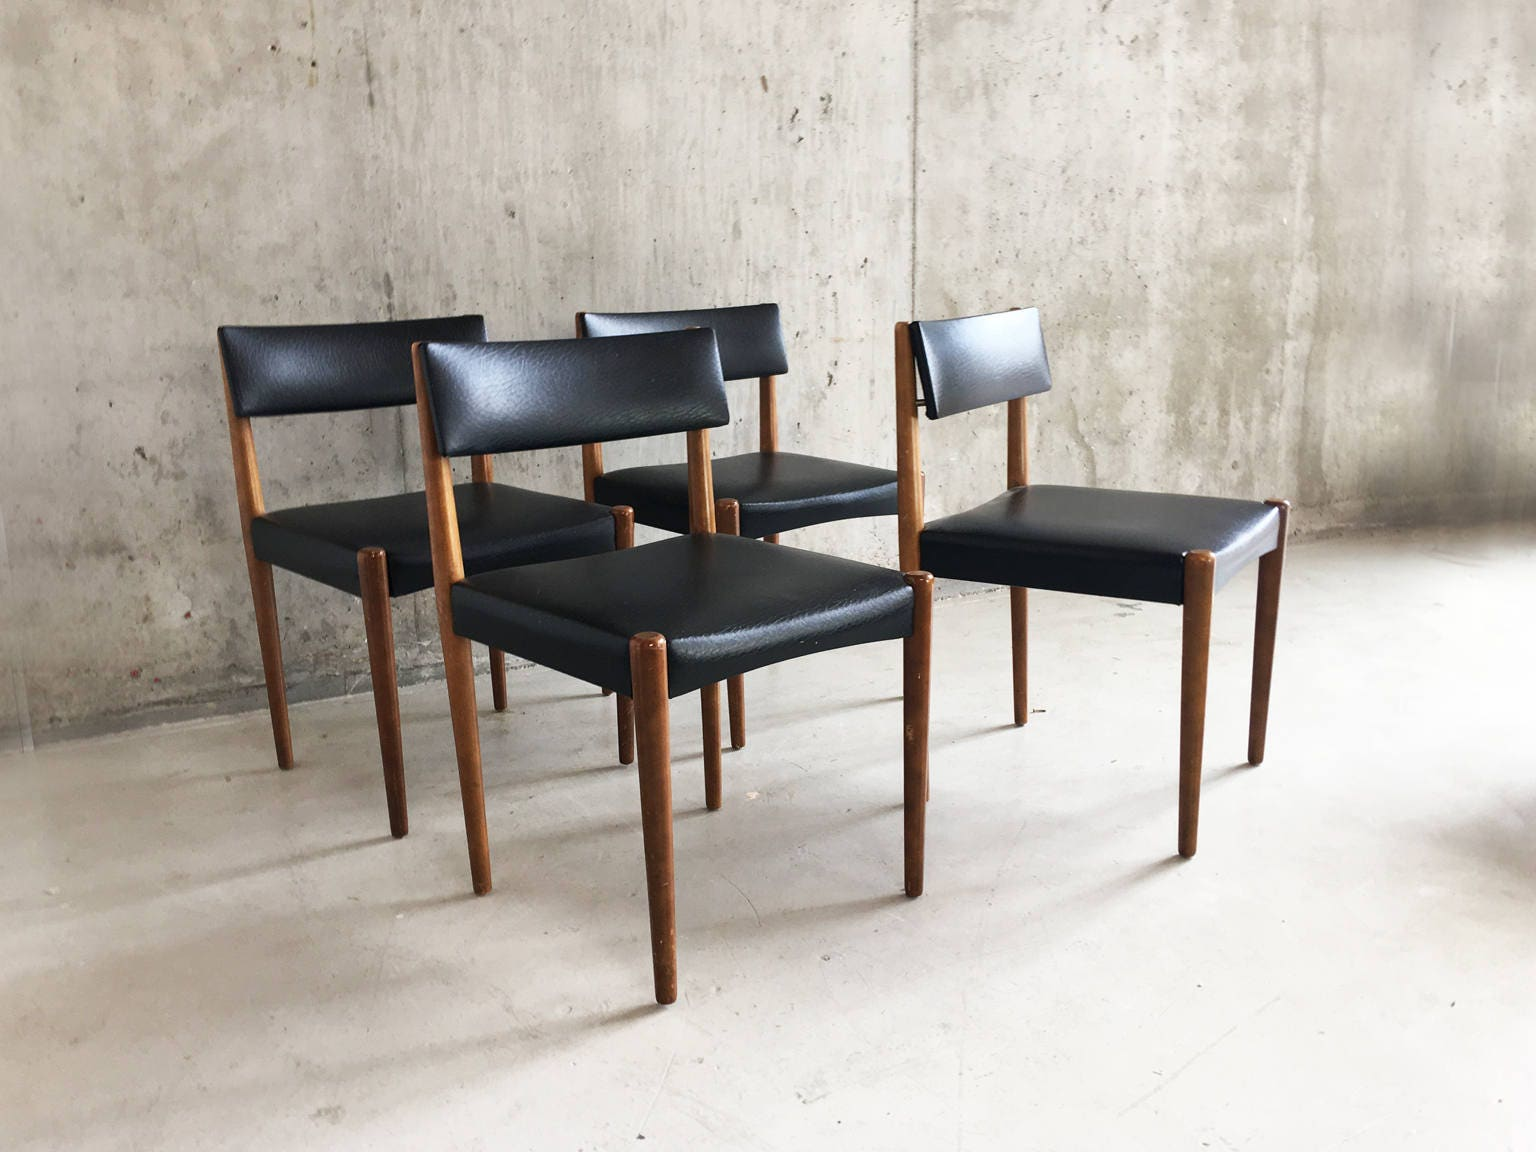 Set of four 1970s mid century teak and black vinyl dining chairs